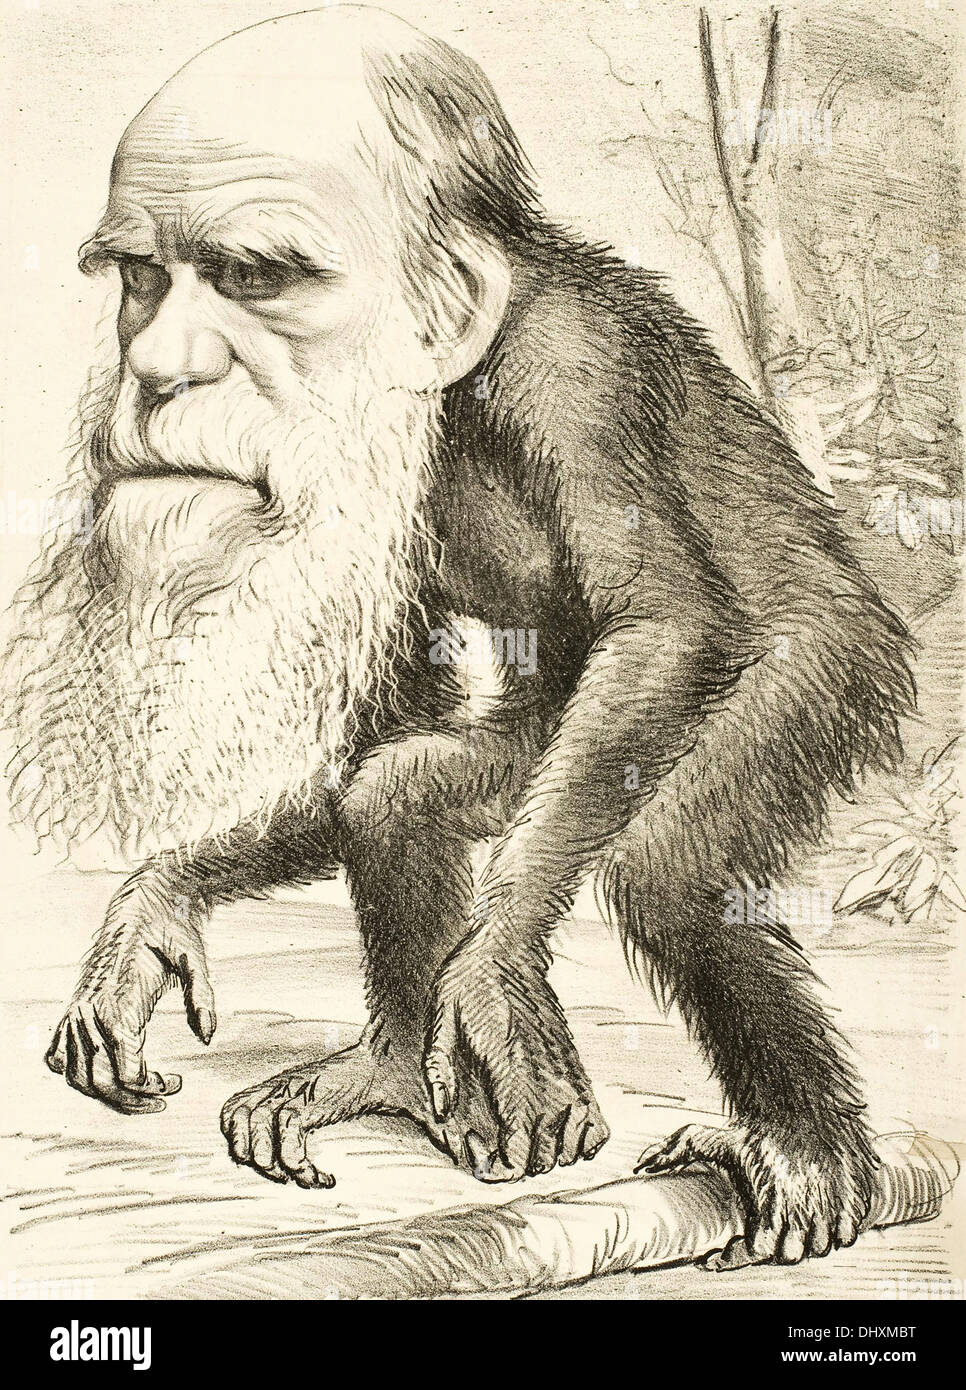 Cartoon von Charles Darwin 1871 Stockbild